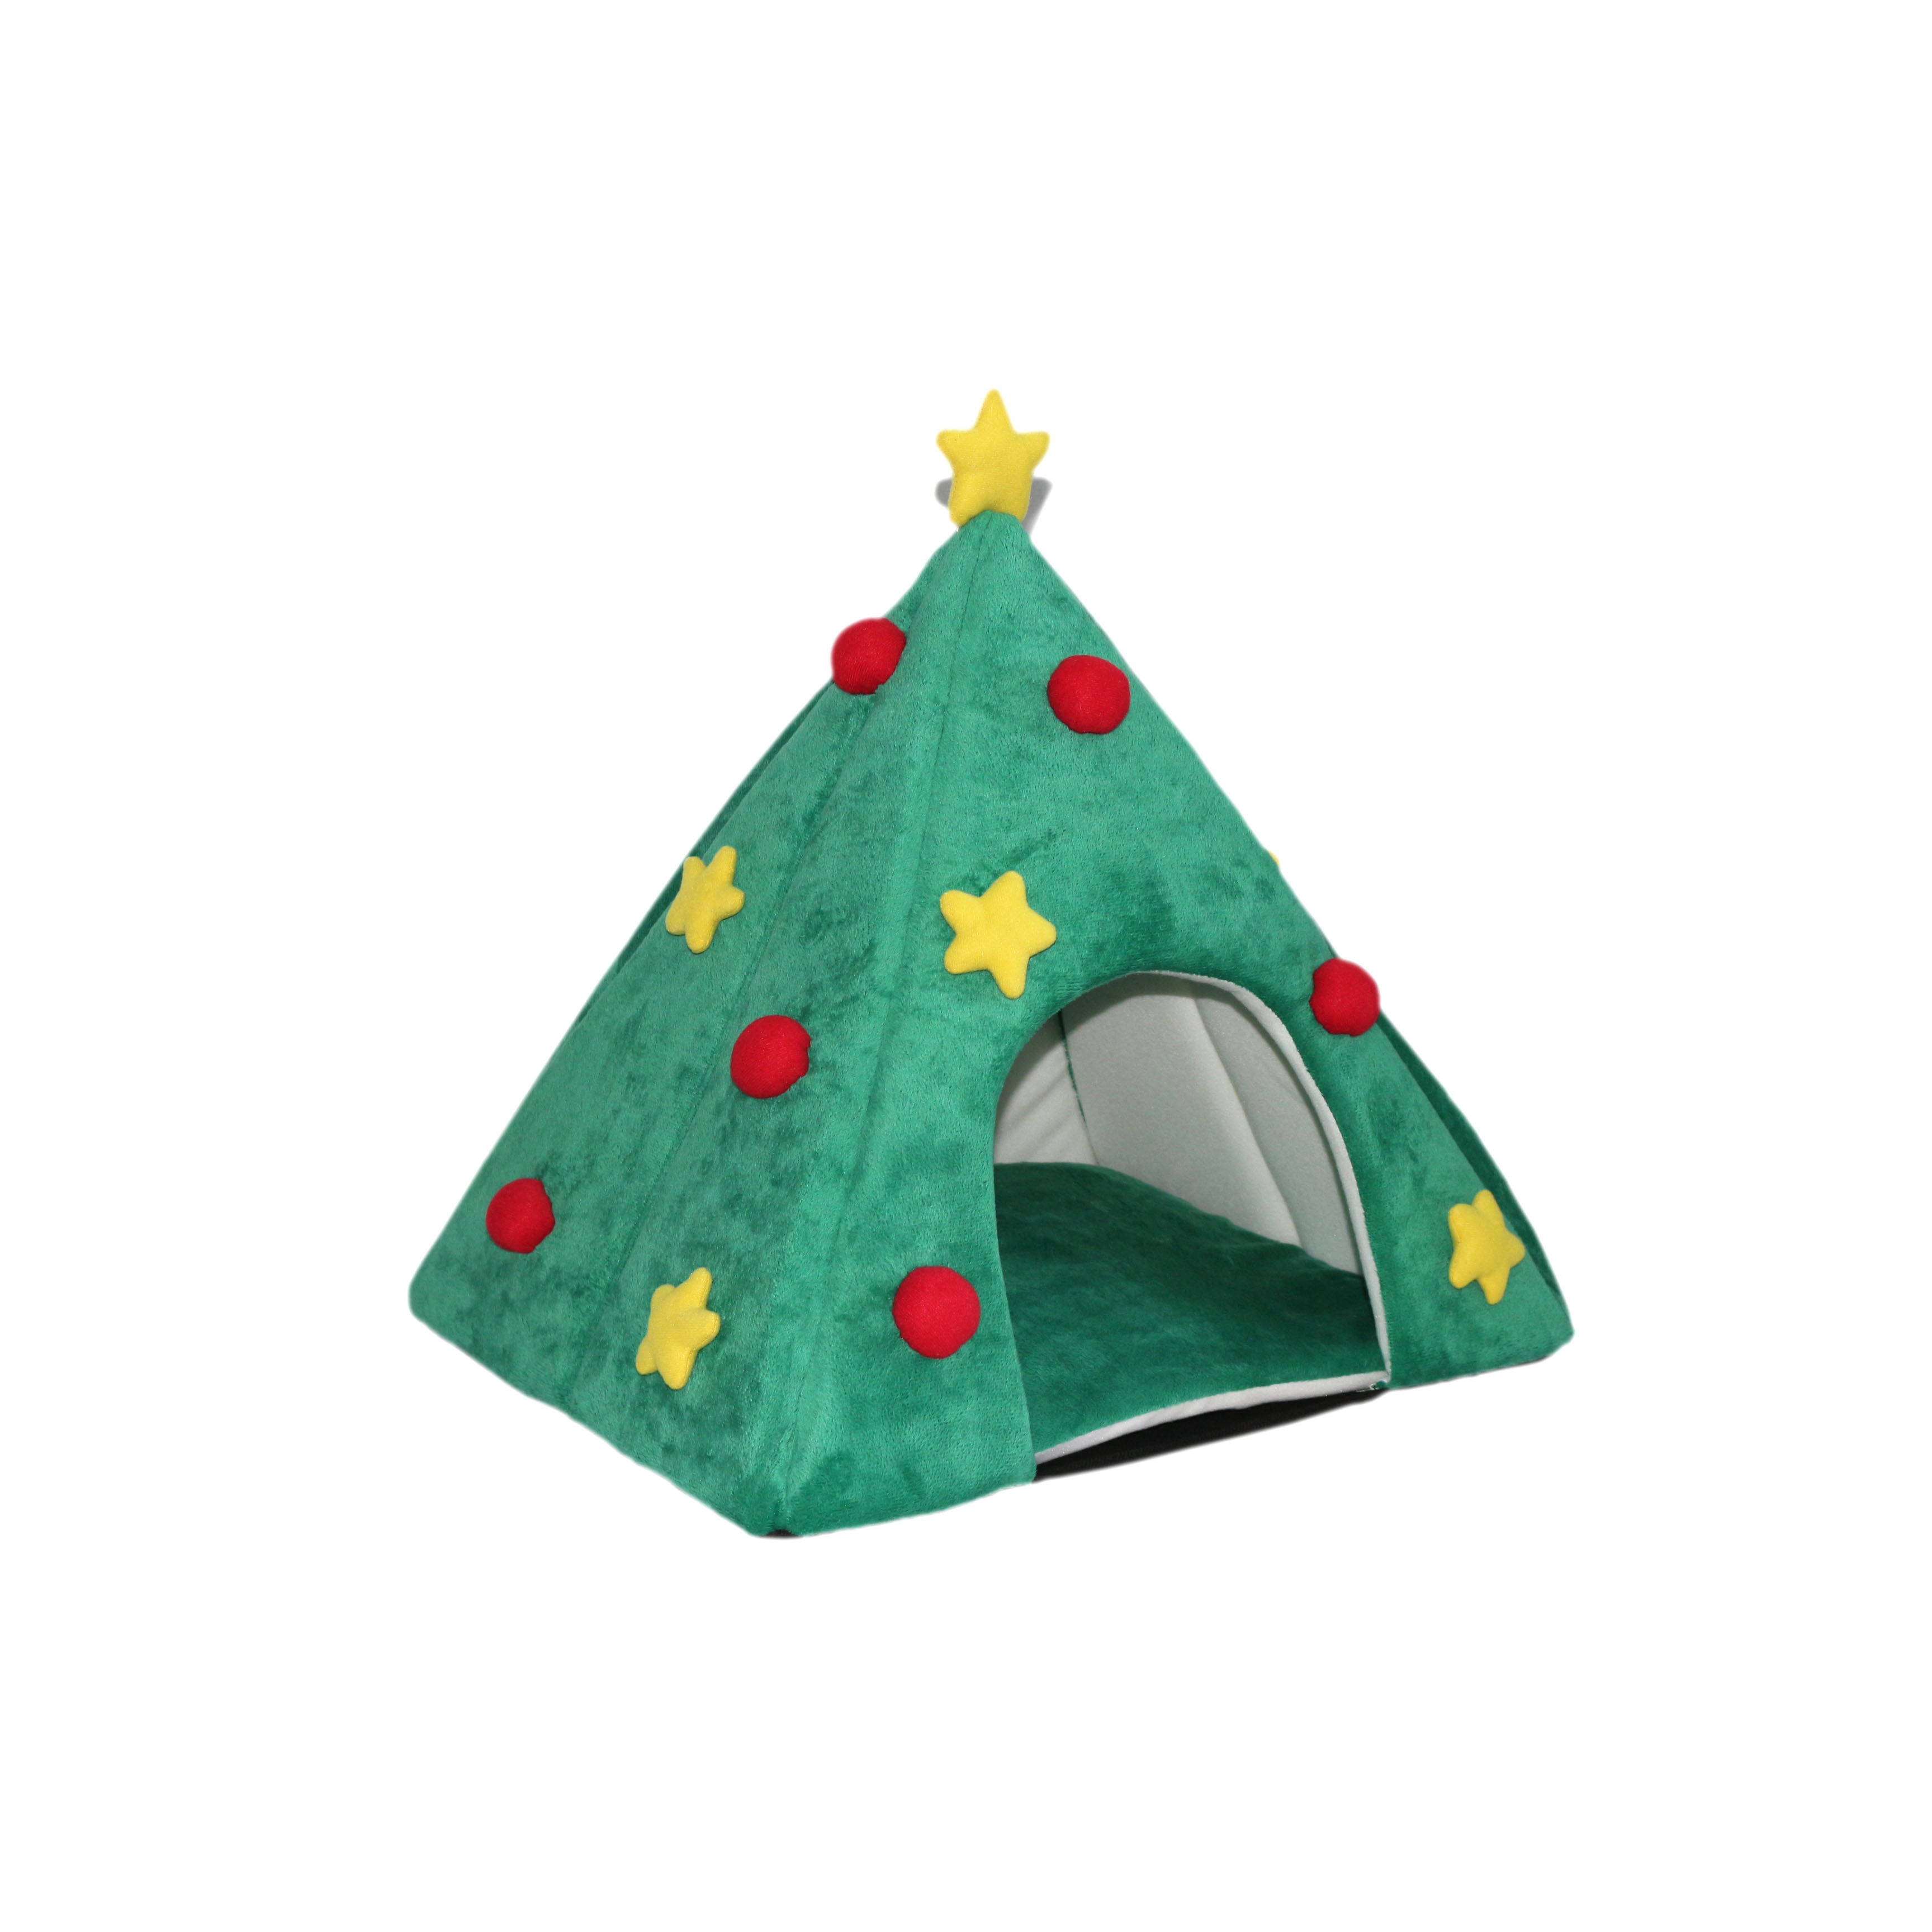 Toy Christmas Tree Pet Bed, Green, Size Small